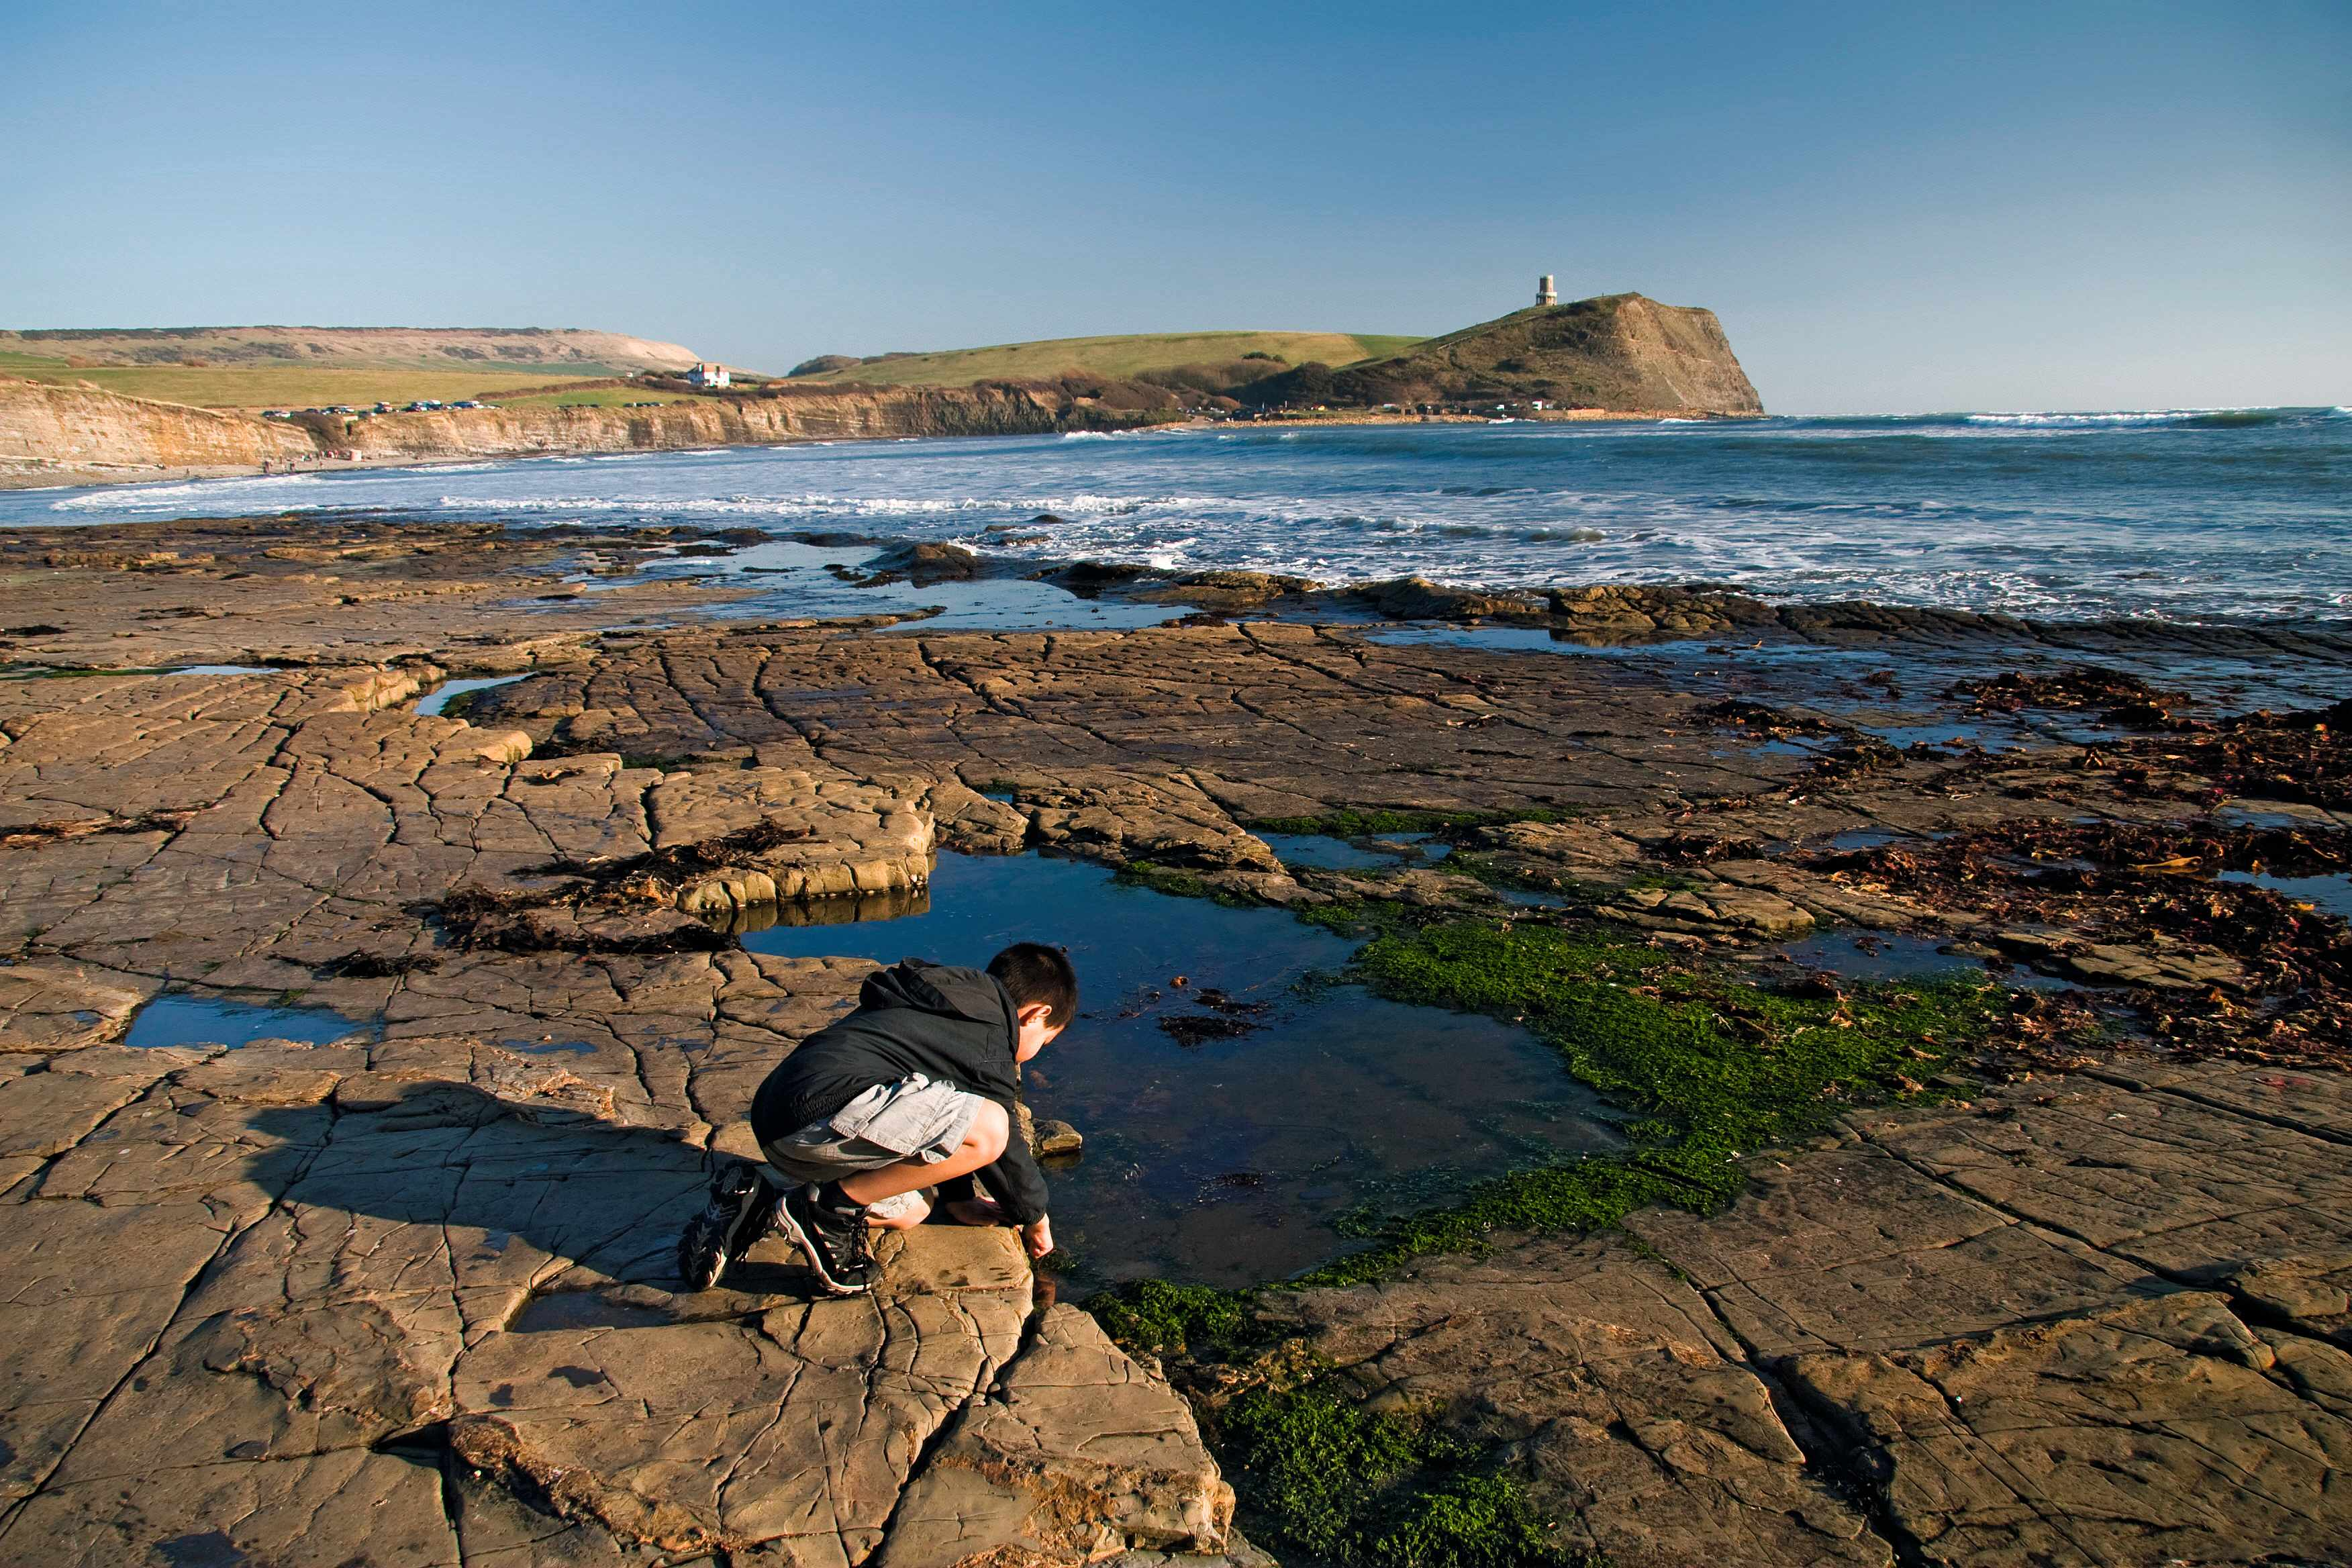 Boy rockpooling, kneeling on rocks, Kimmeridge Bay, Dorset, England, february